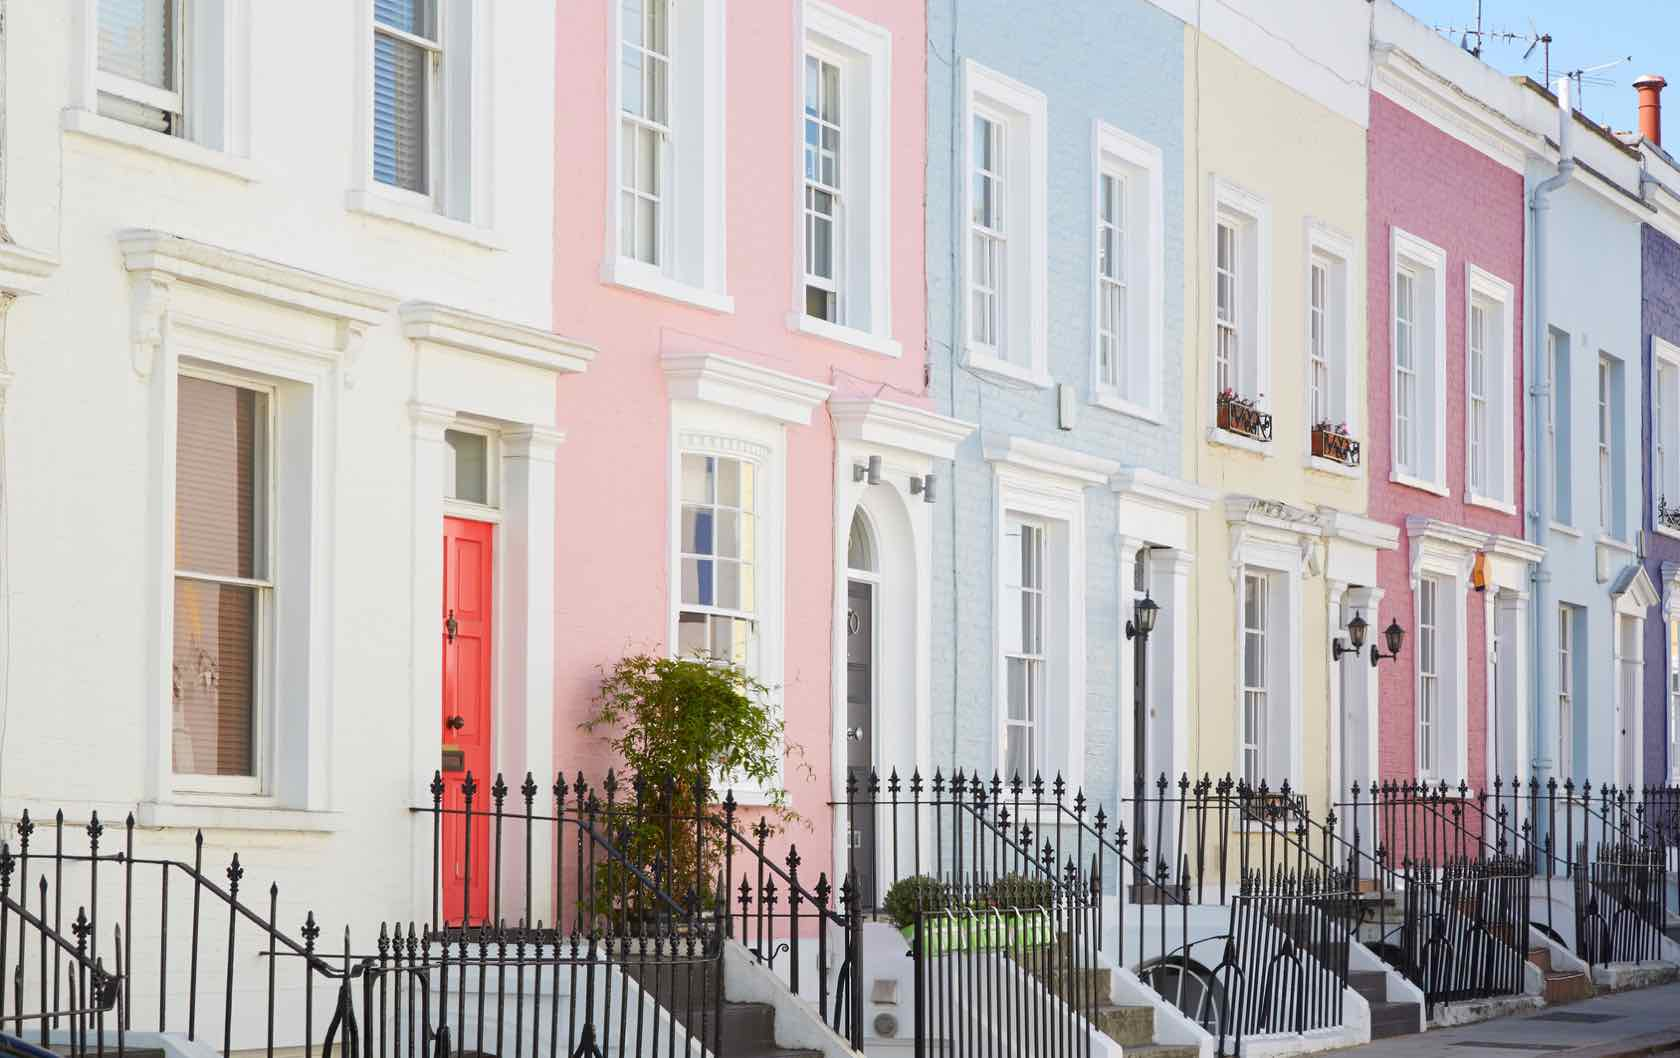 A Guide to Notting Hill's Most Colorful Streets